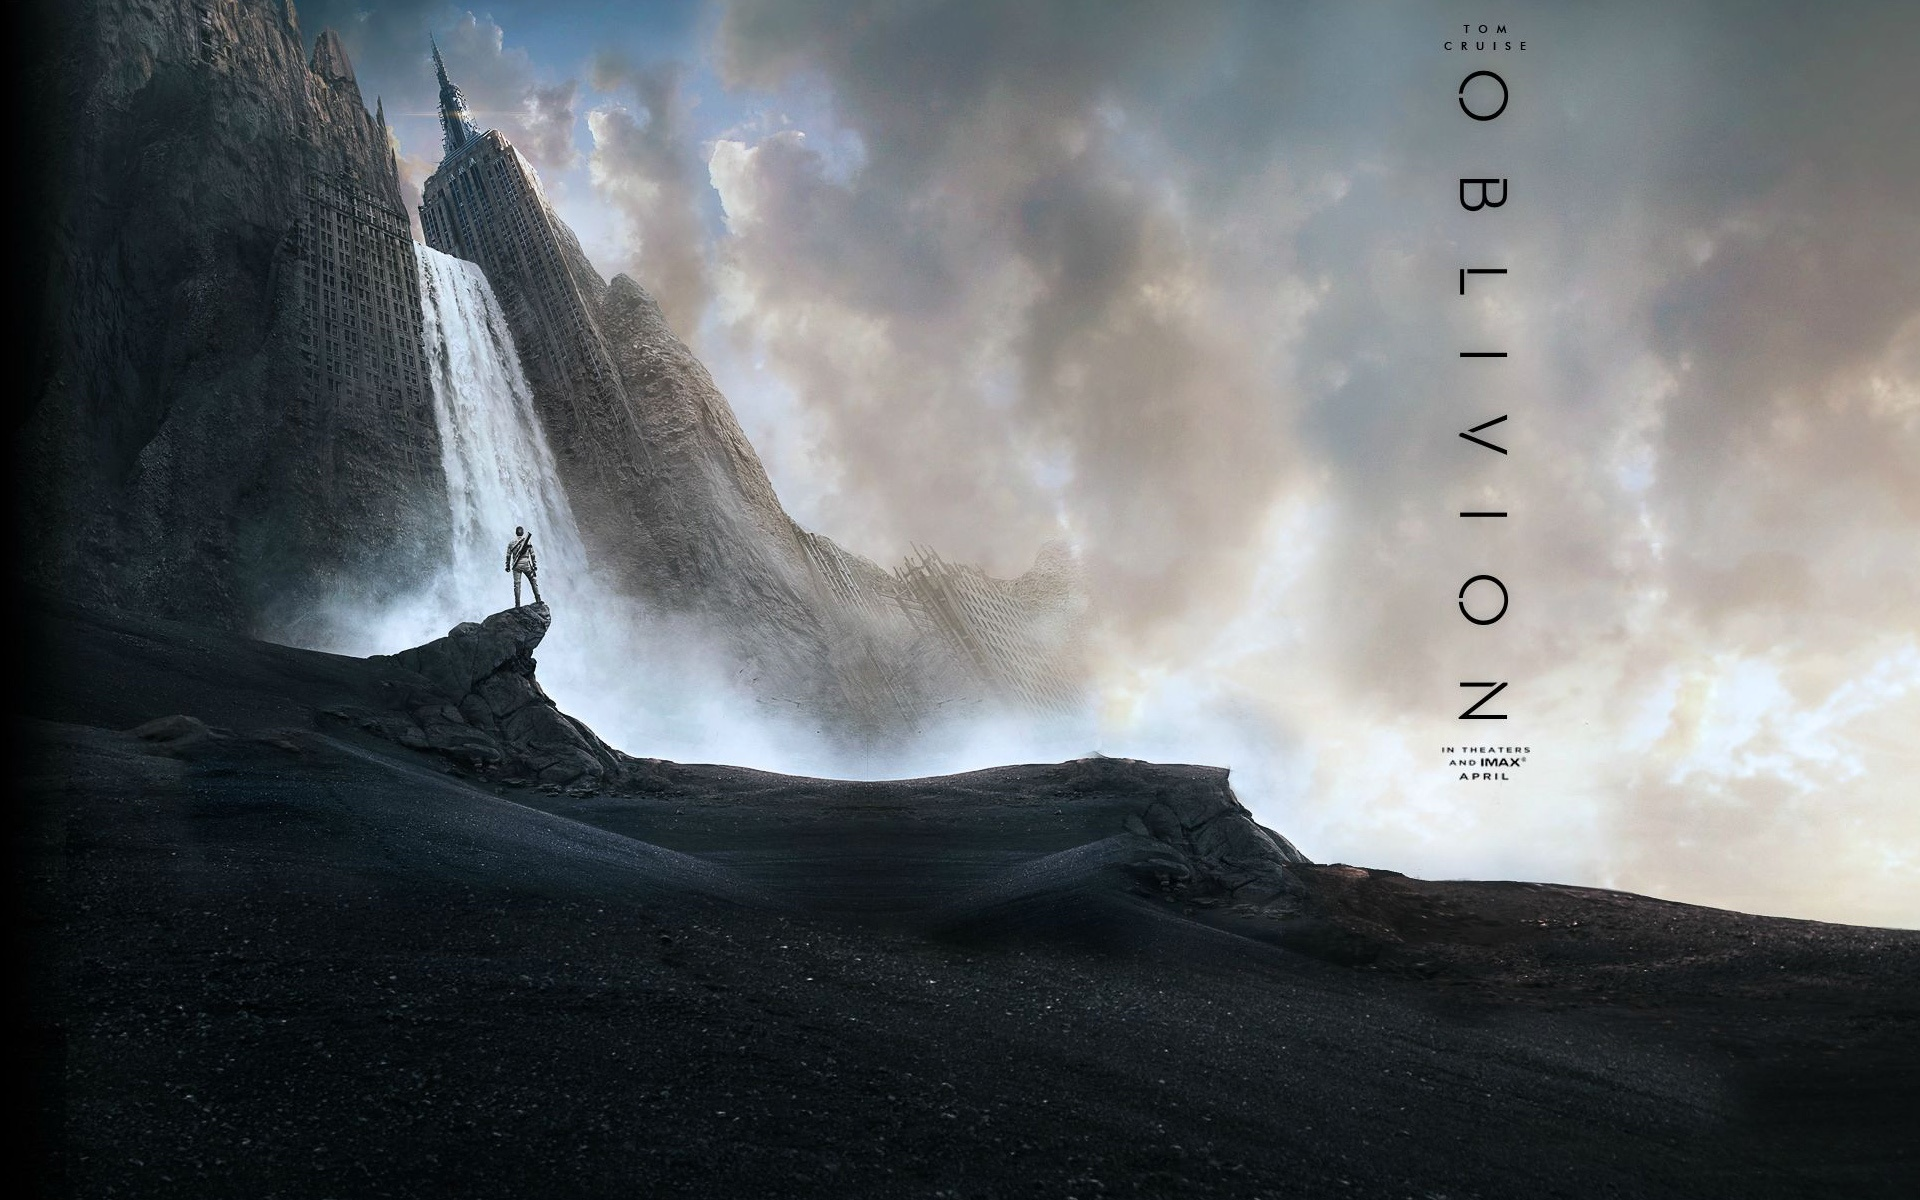 Tom Cruise Oblivion Wallpapers in jpg format for download 1920x1200